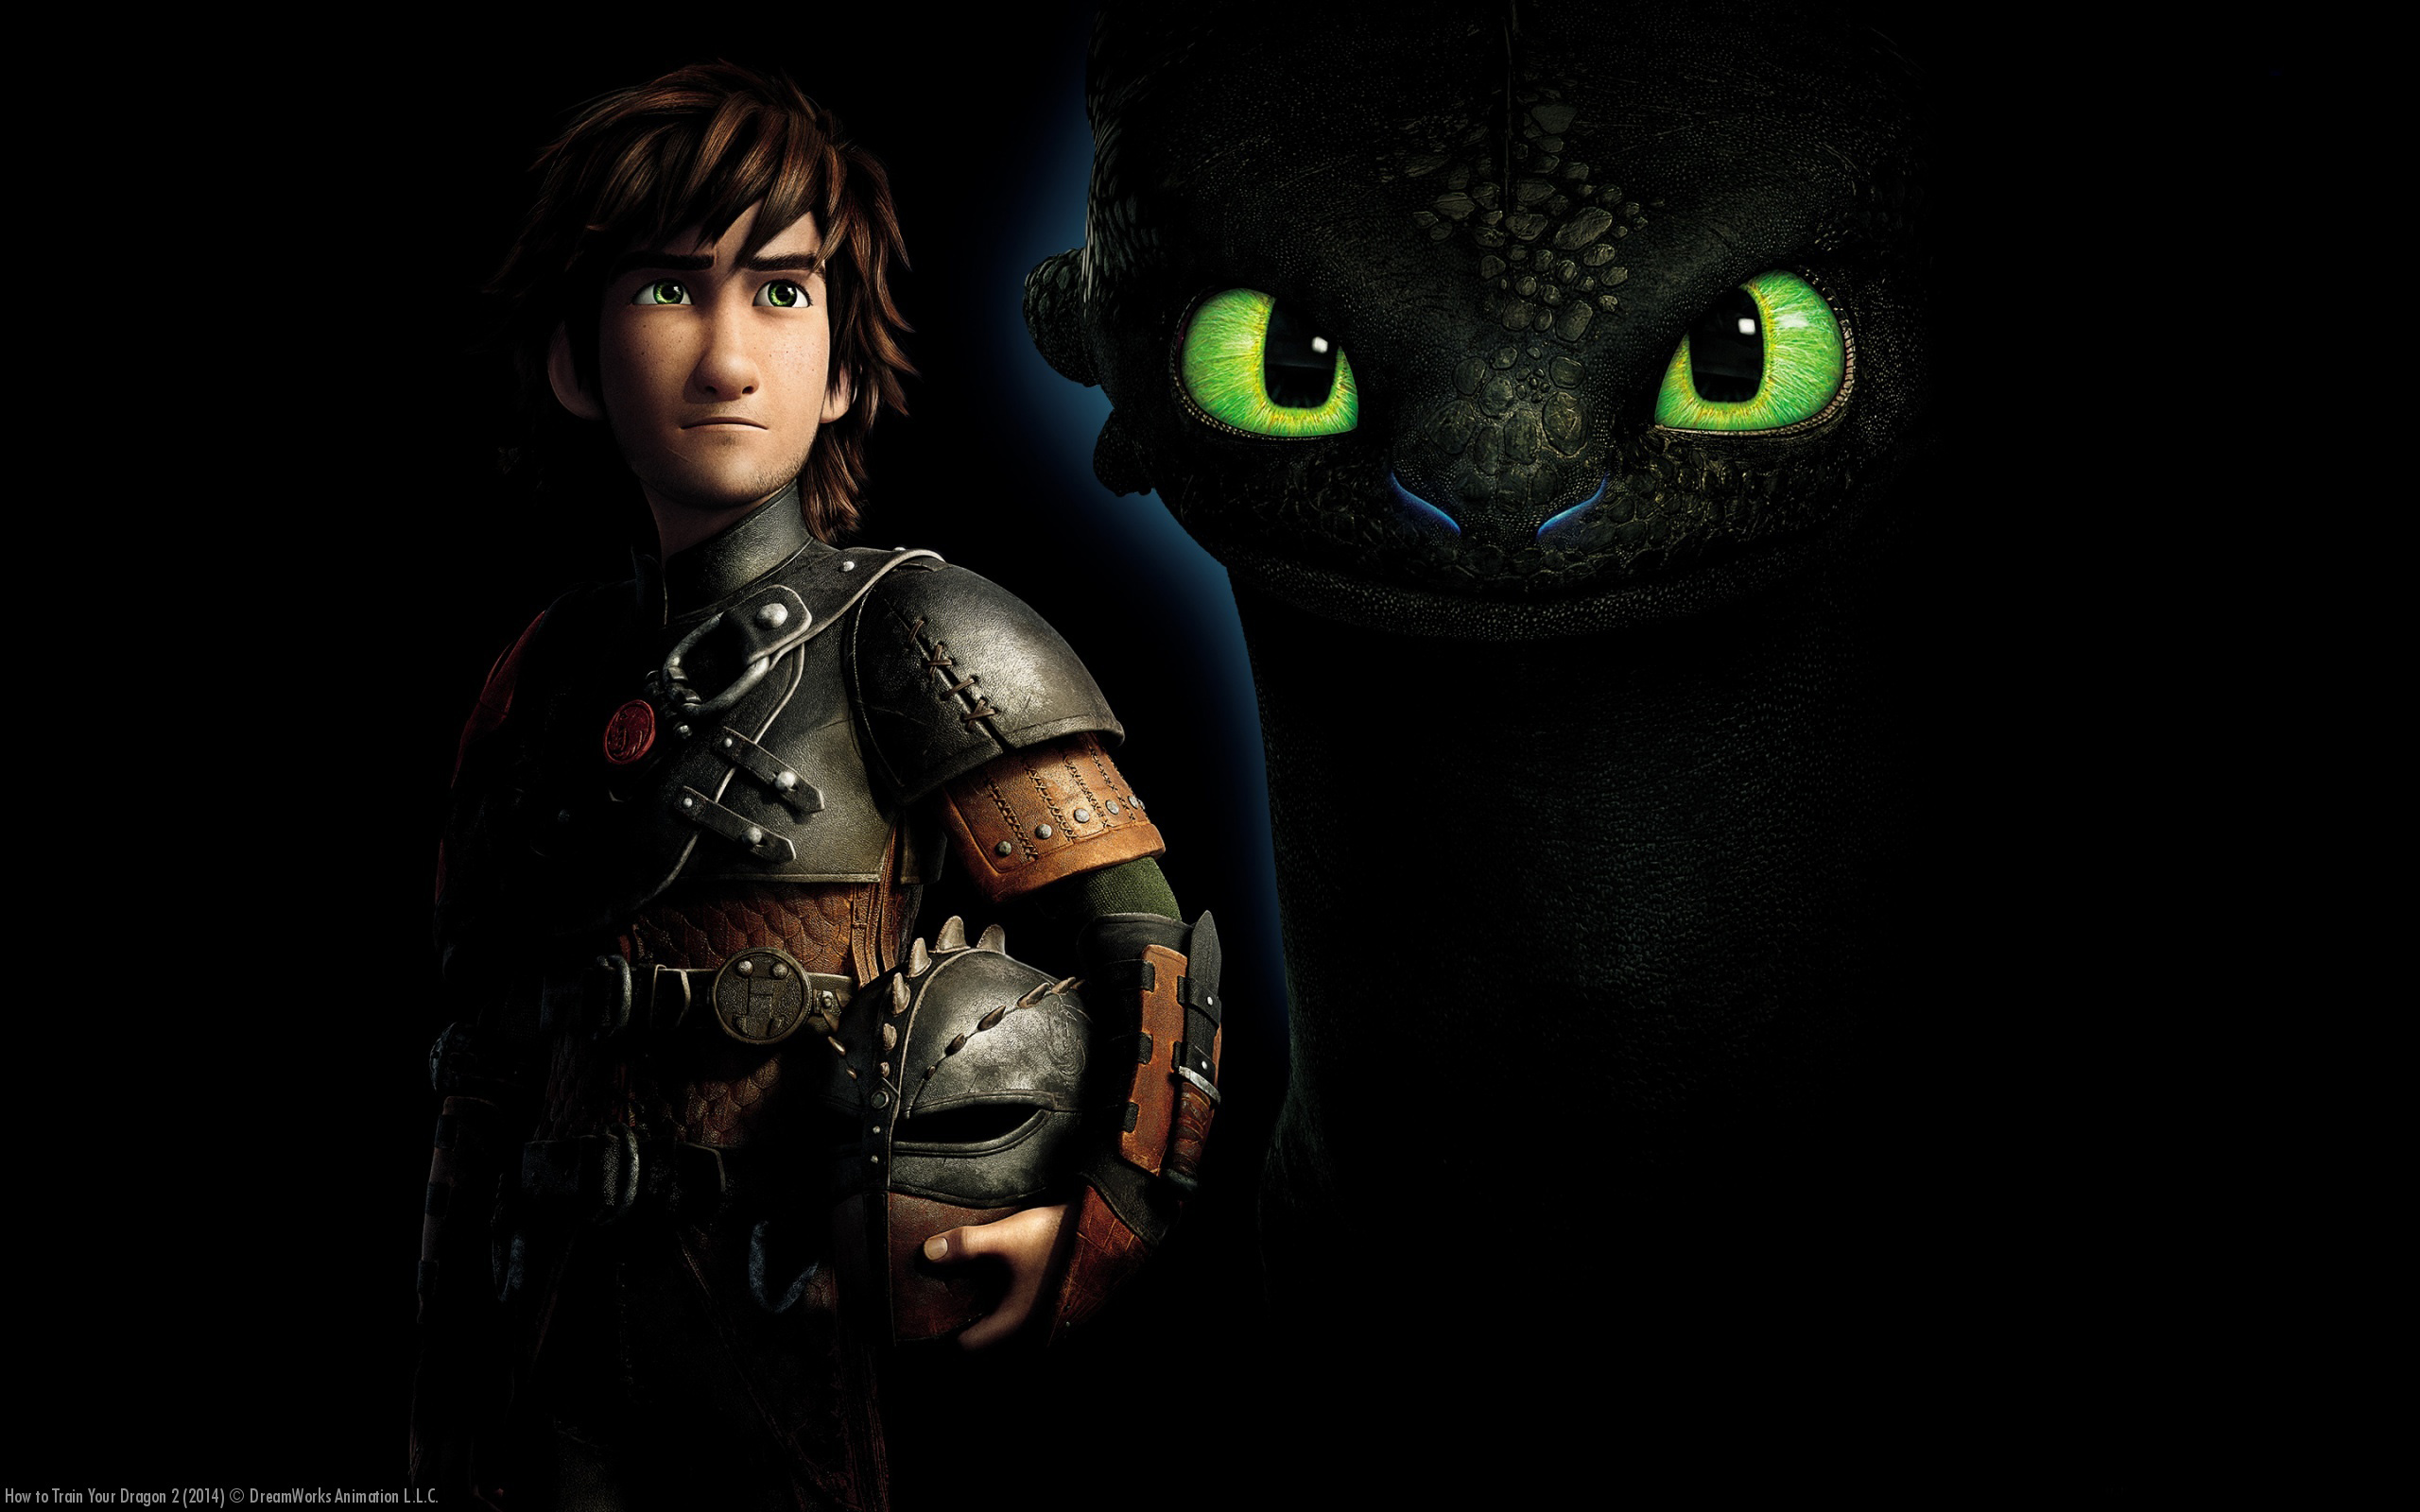 84 toothless how to train your dragon hd wallpapers background hd wallpaper background image id618502 2560x1600 movie how to train your dragon 2 ccuart